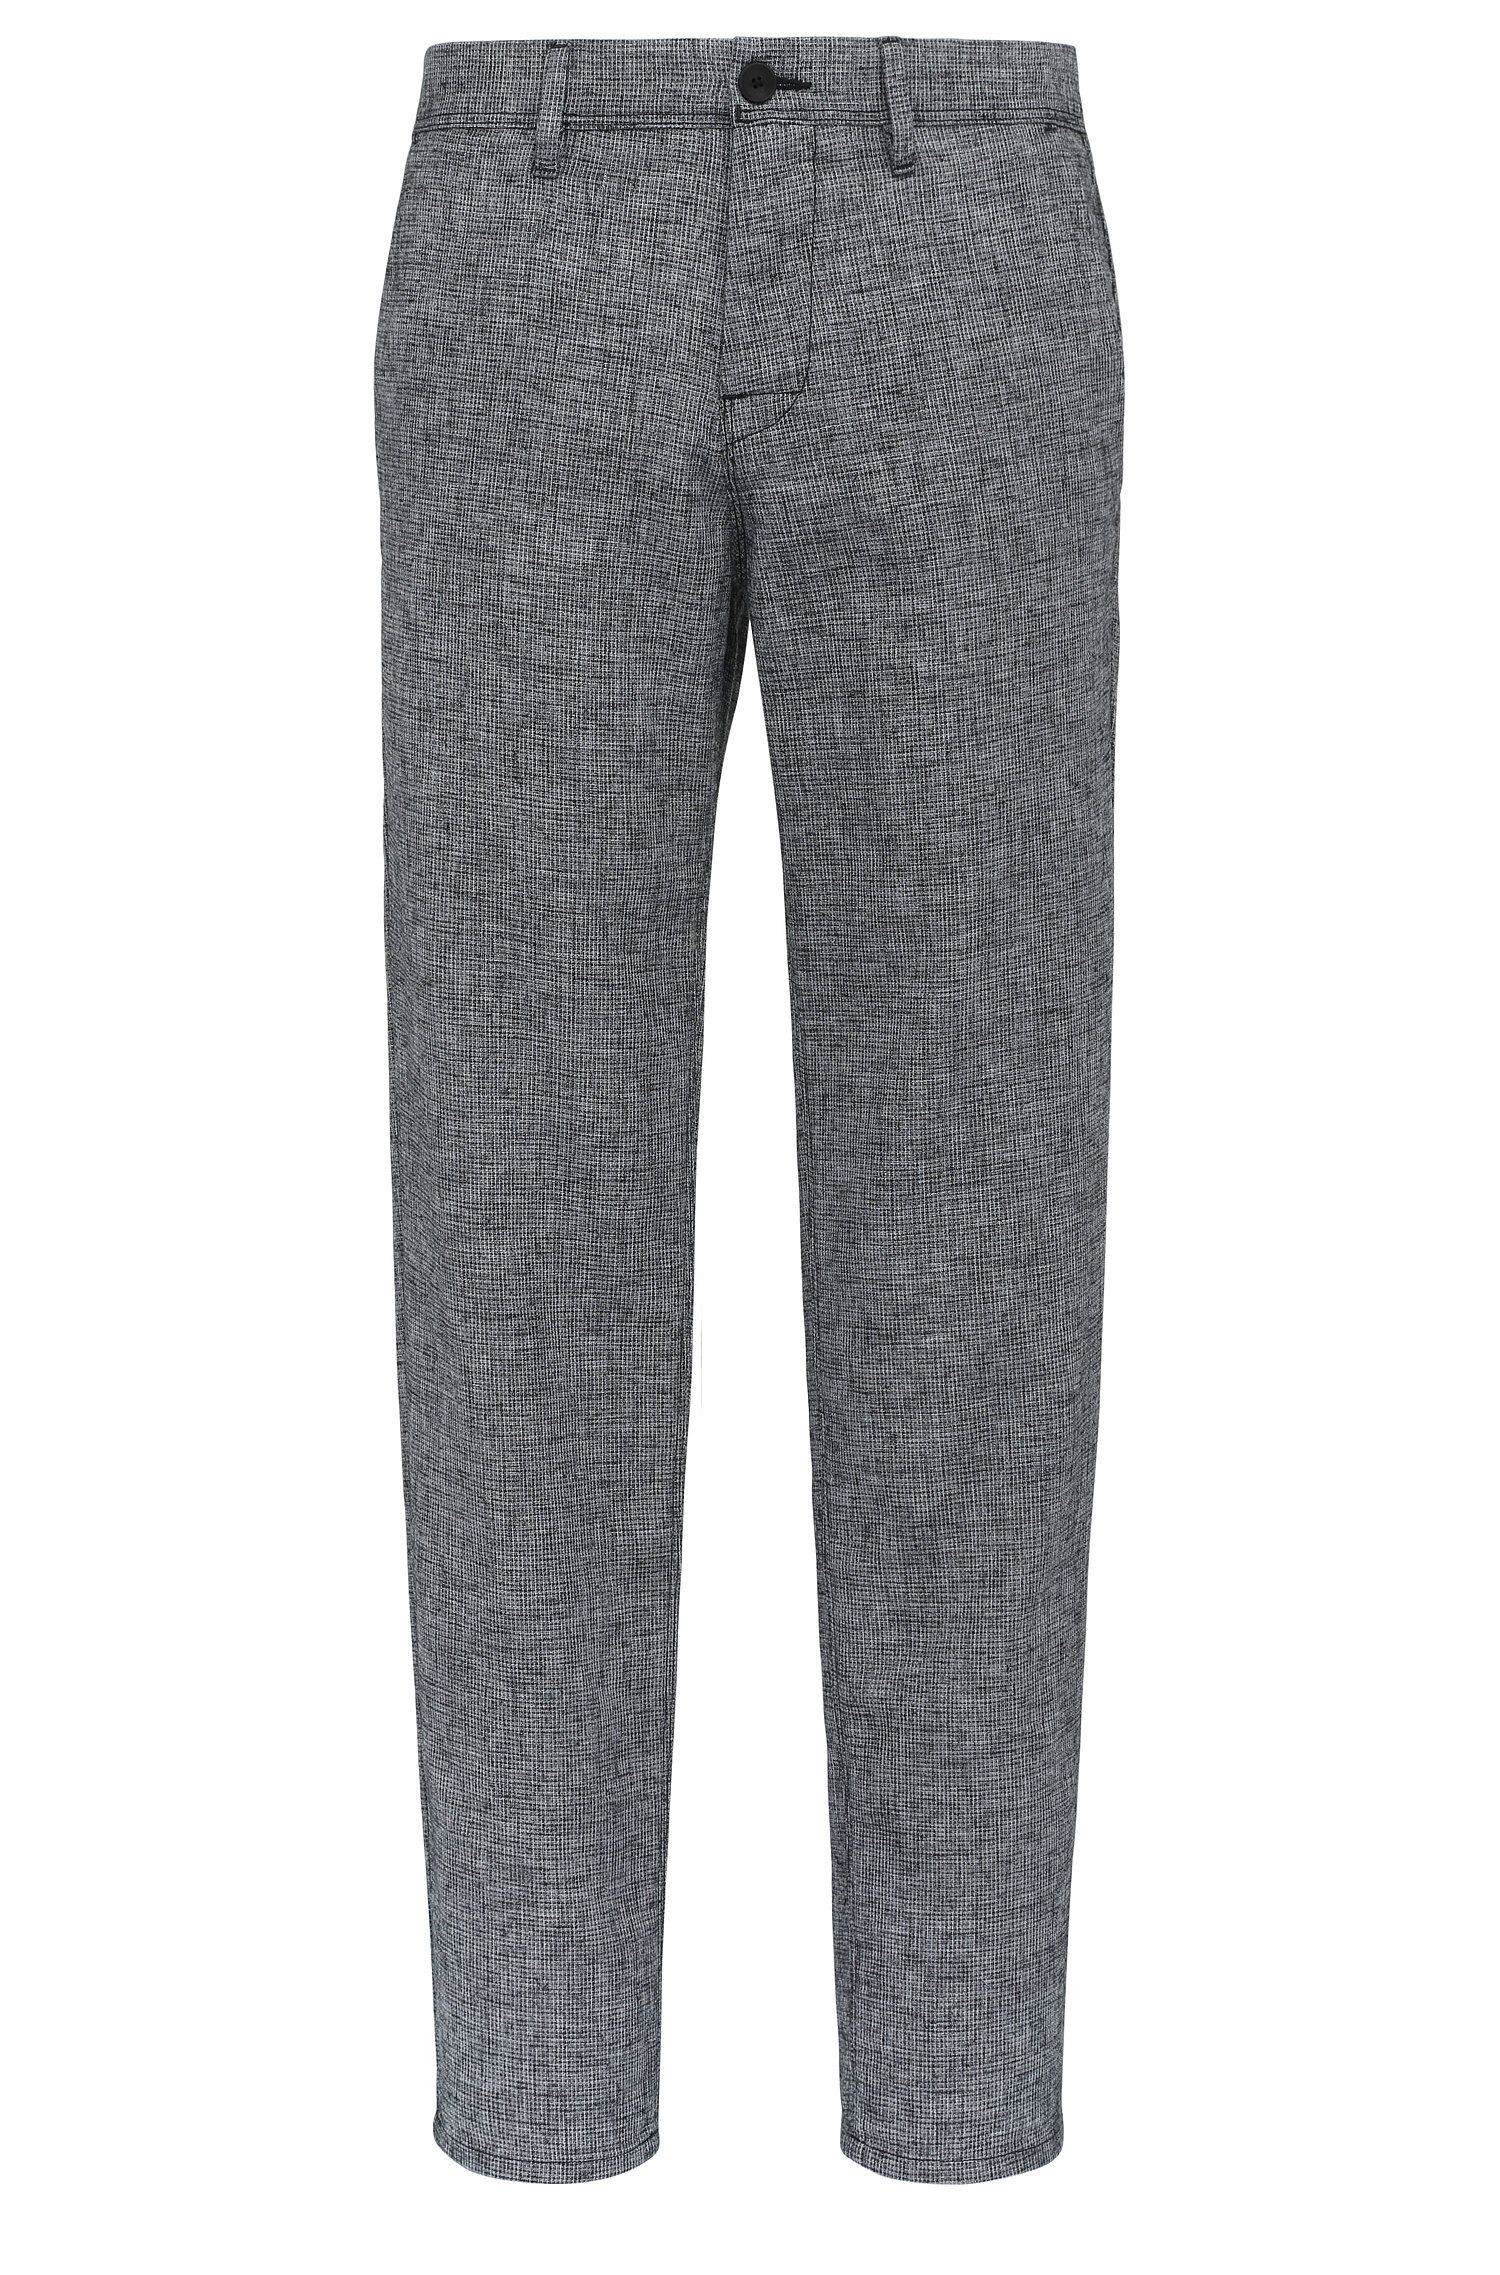 Cotton Linen Blend Trousers, Tapered Fit | Stapered W